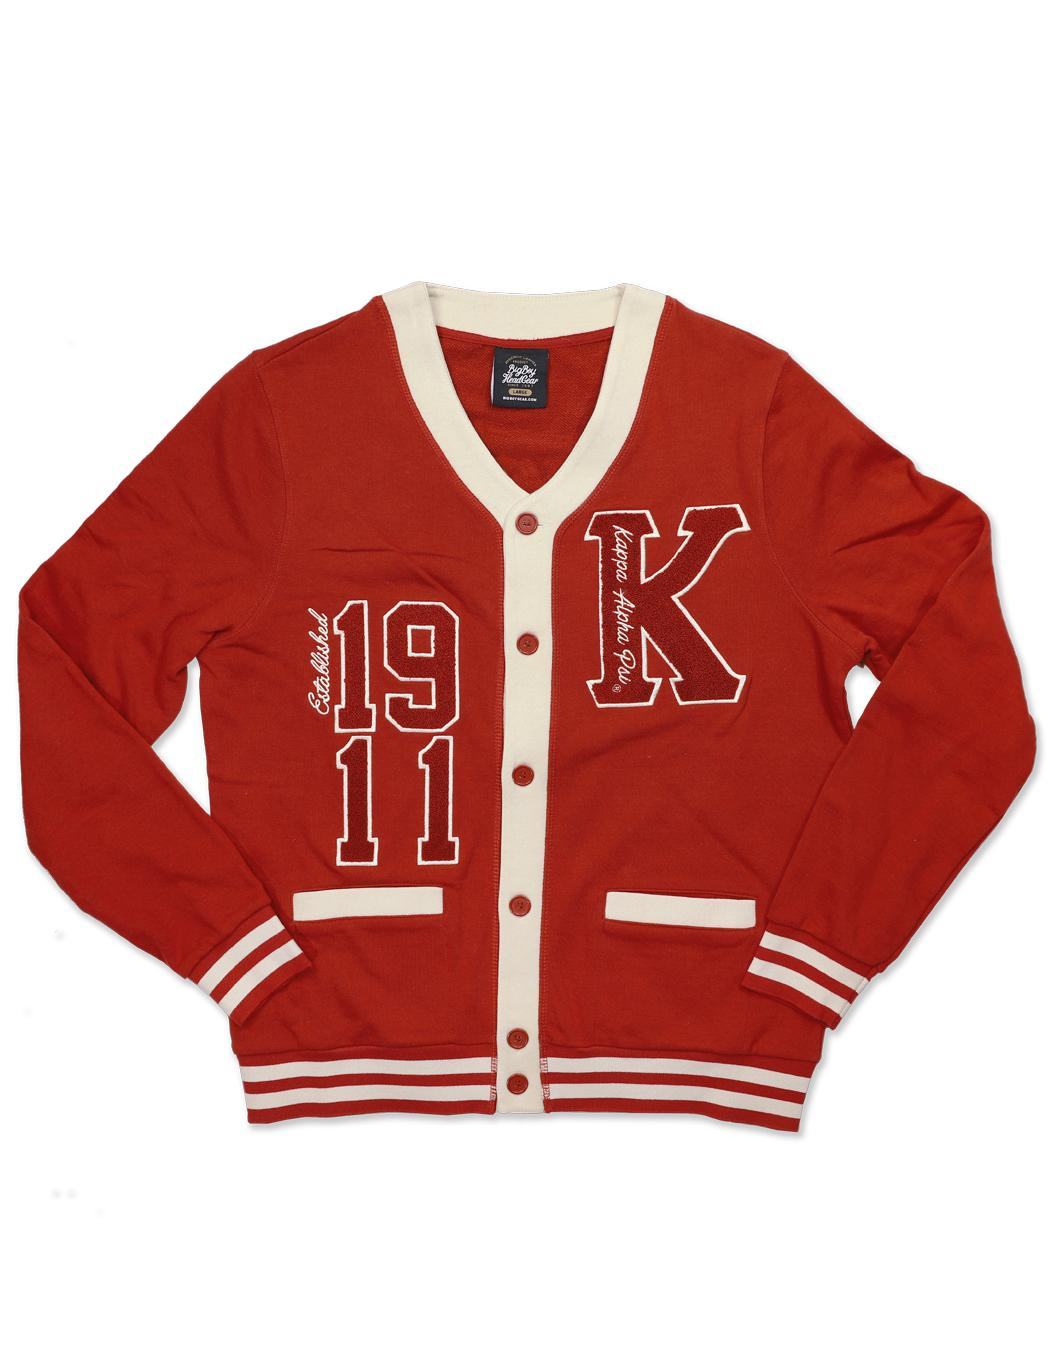 Kappa Alpha Psi apparel cardigan